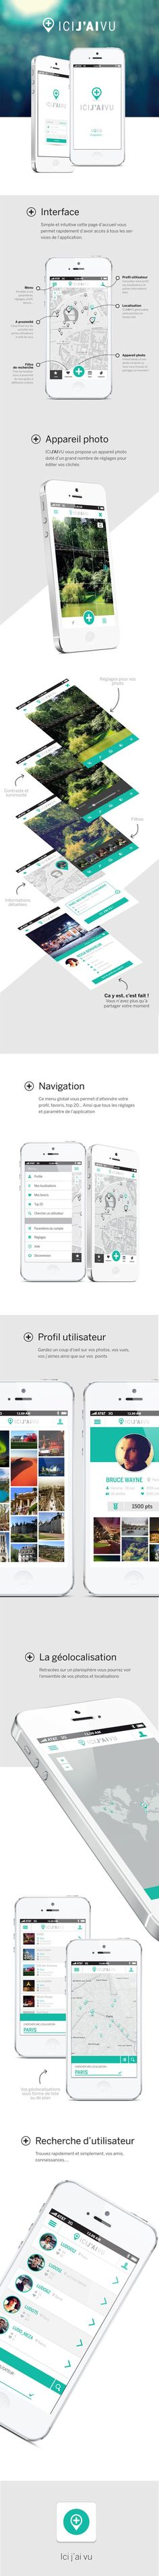 Application ICI J'AI VU by Nathalie Troucelier, via Behance // design mobile, webdesign, digitale, smartphone